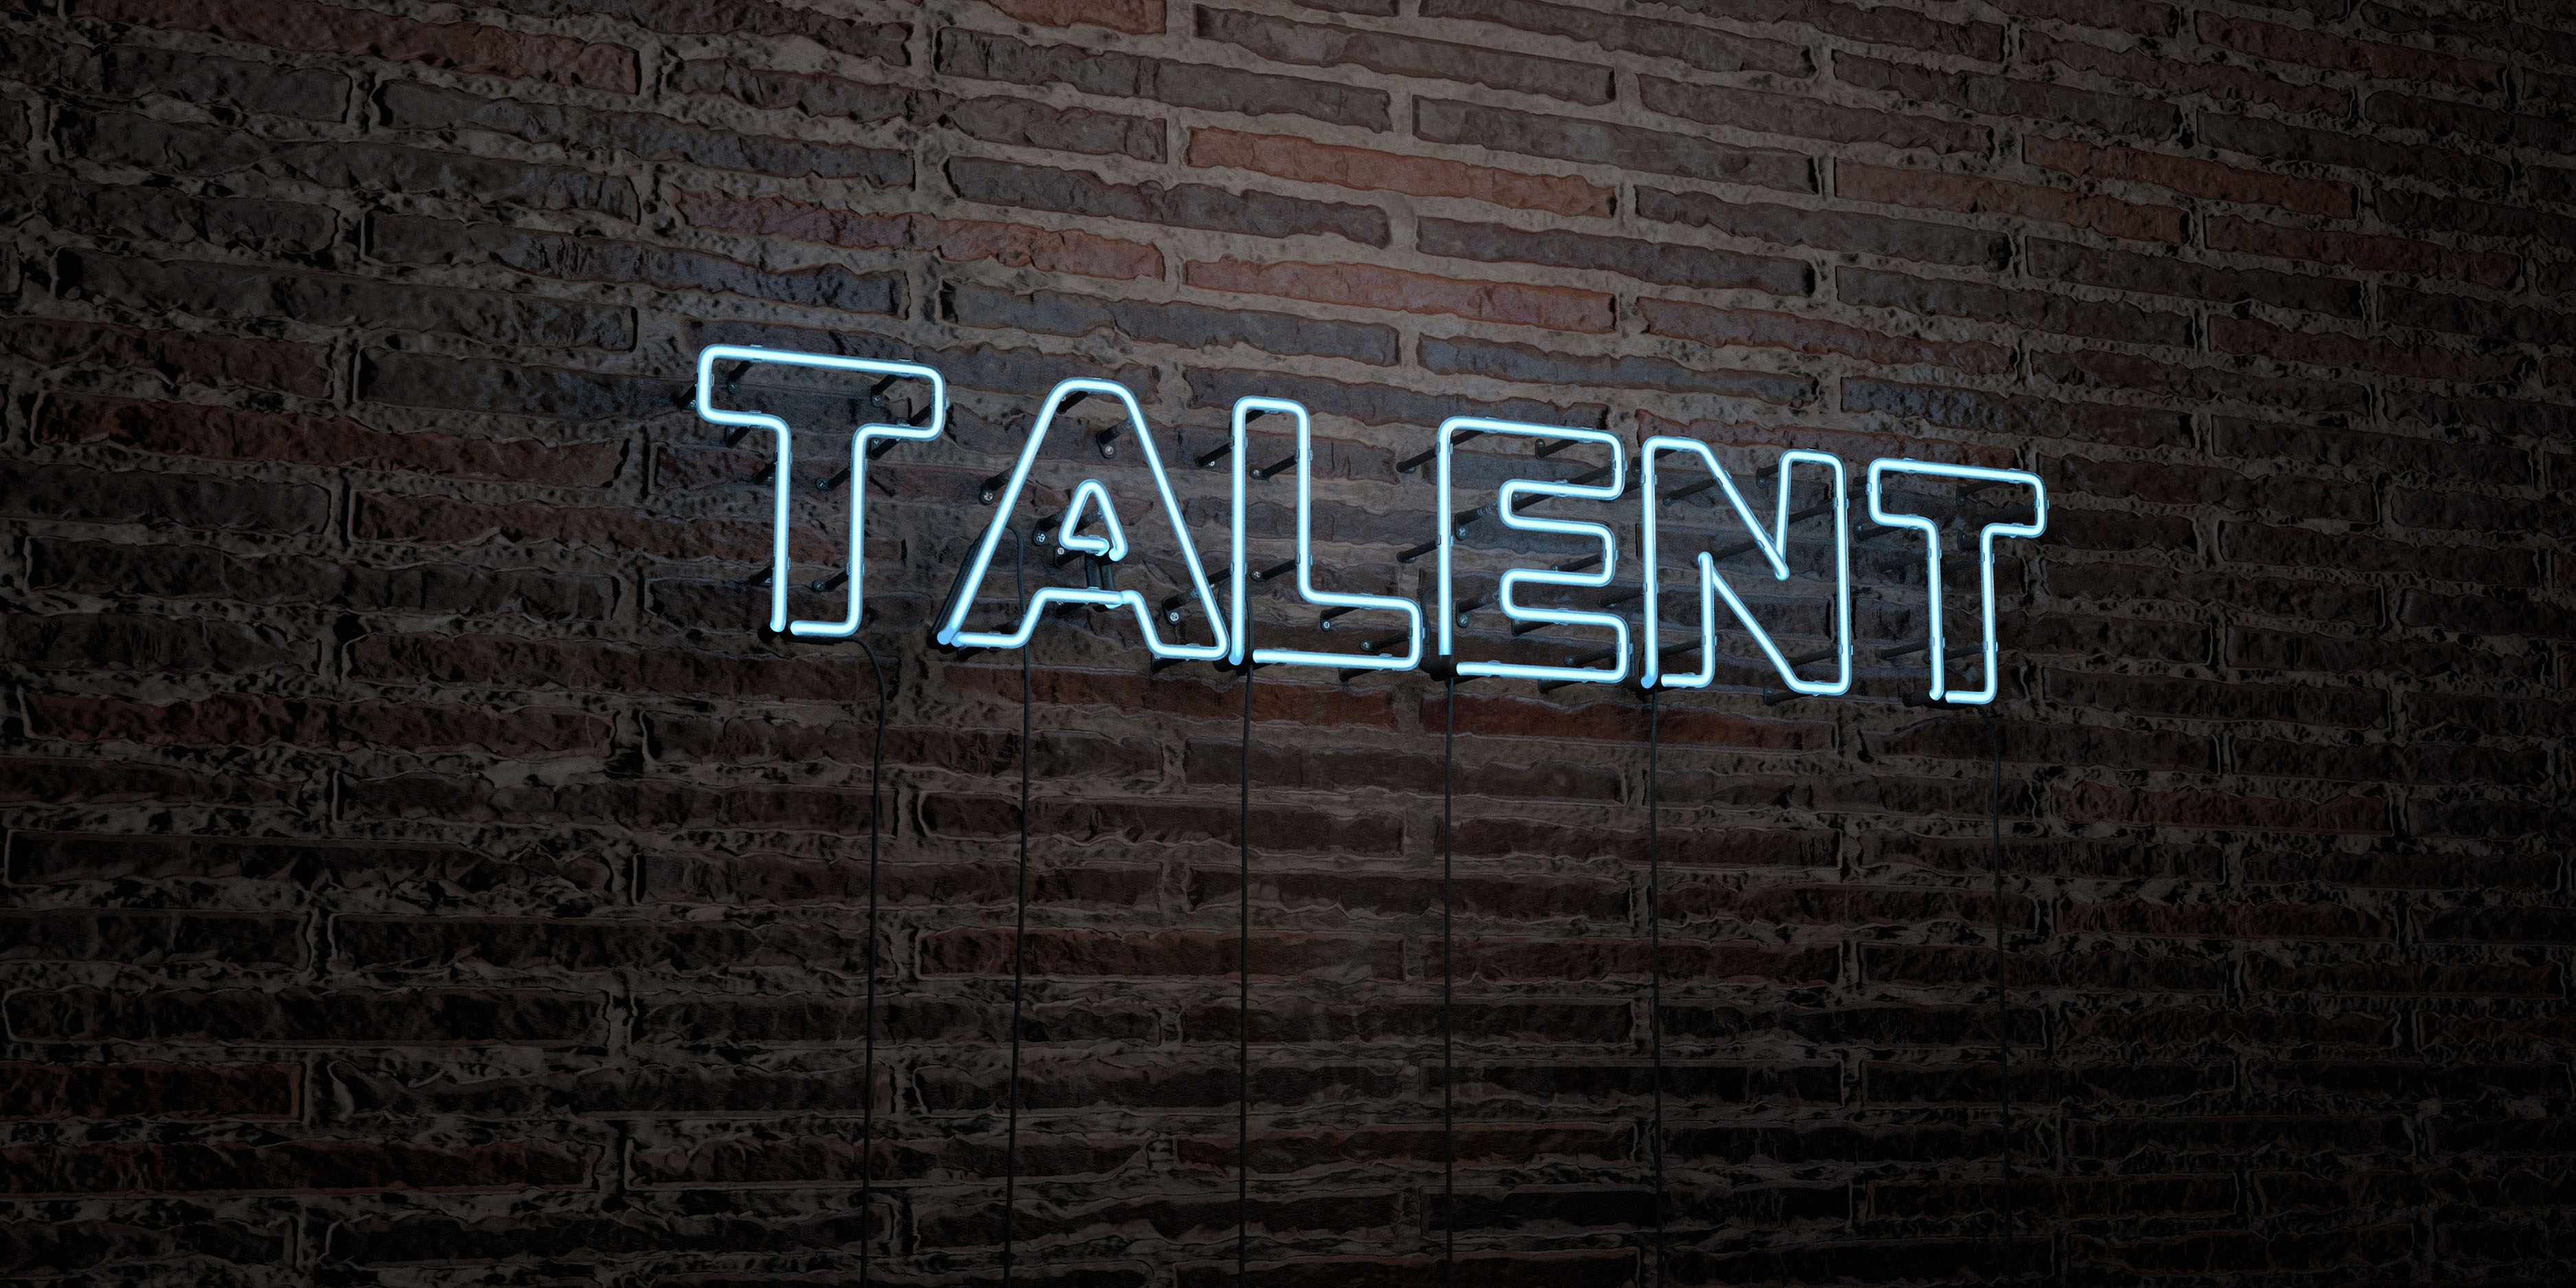 TALENT -Realistic Neon Sign on Brick Wall background